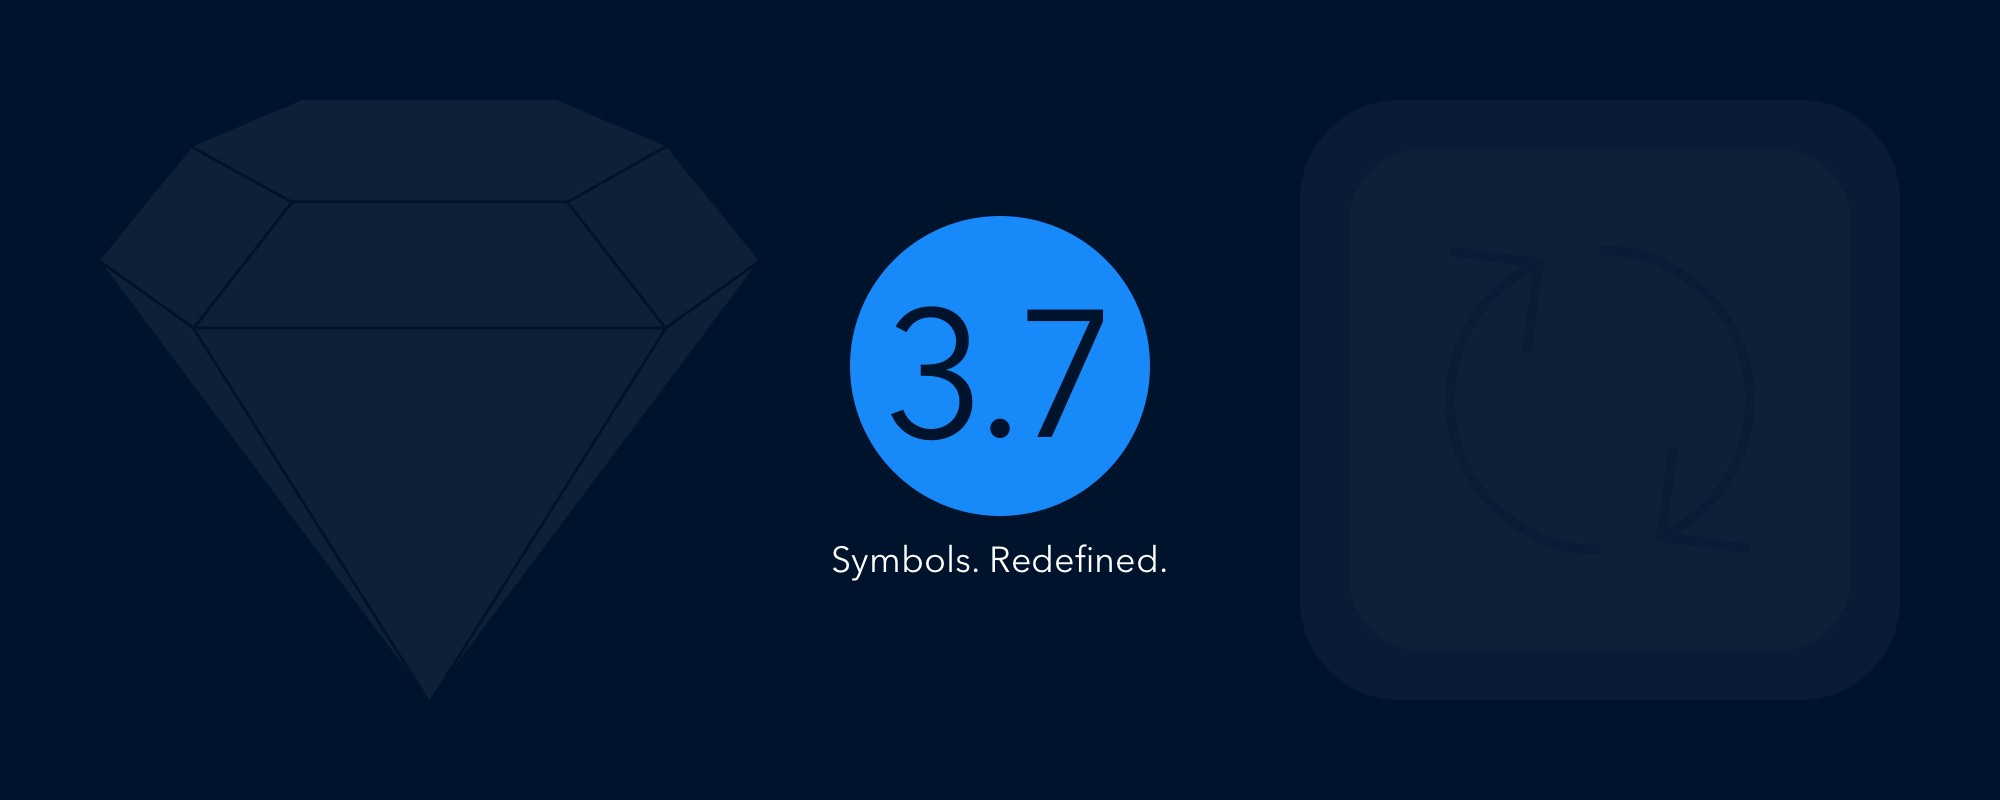 If sketch 37 new symbol can be like this minitheory design and some new features explain in gif buycottarizona